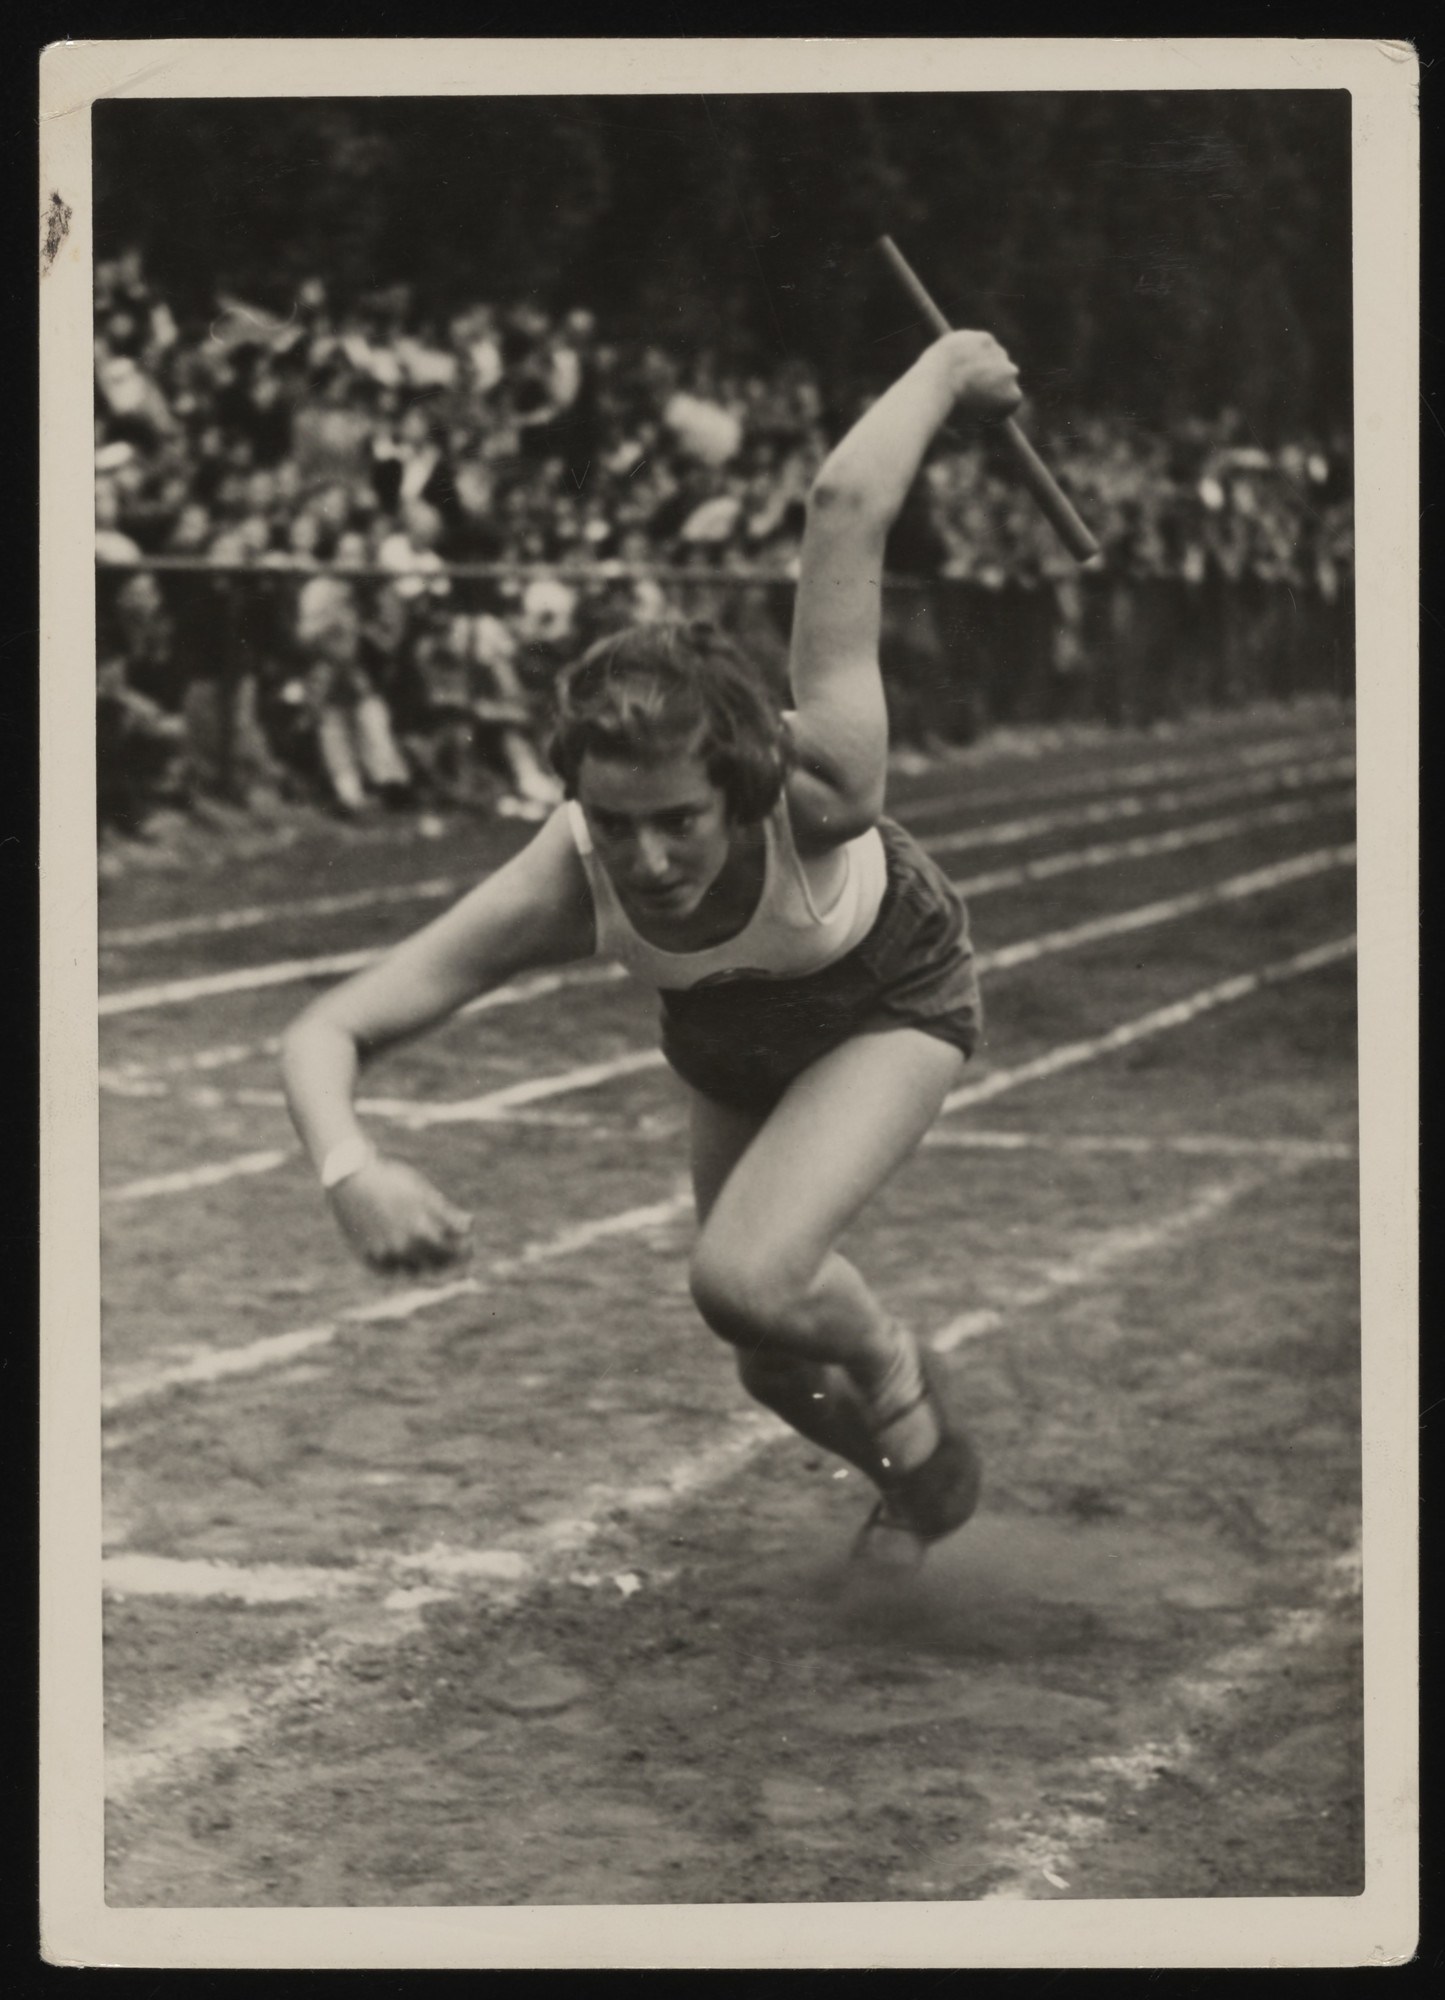 A student from the Goldschmidt School, competes in a relay race. Pictured is either Ilse Braun/Baum or Hilde Lotte Anker.